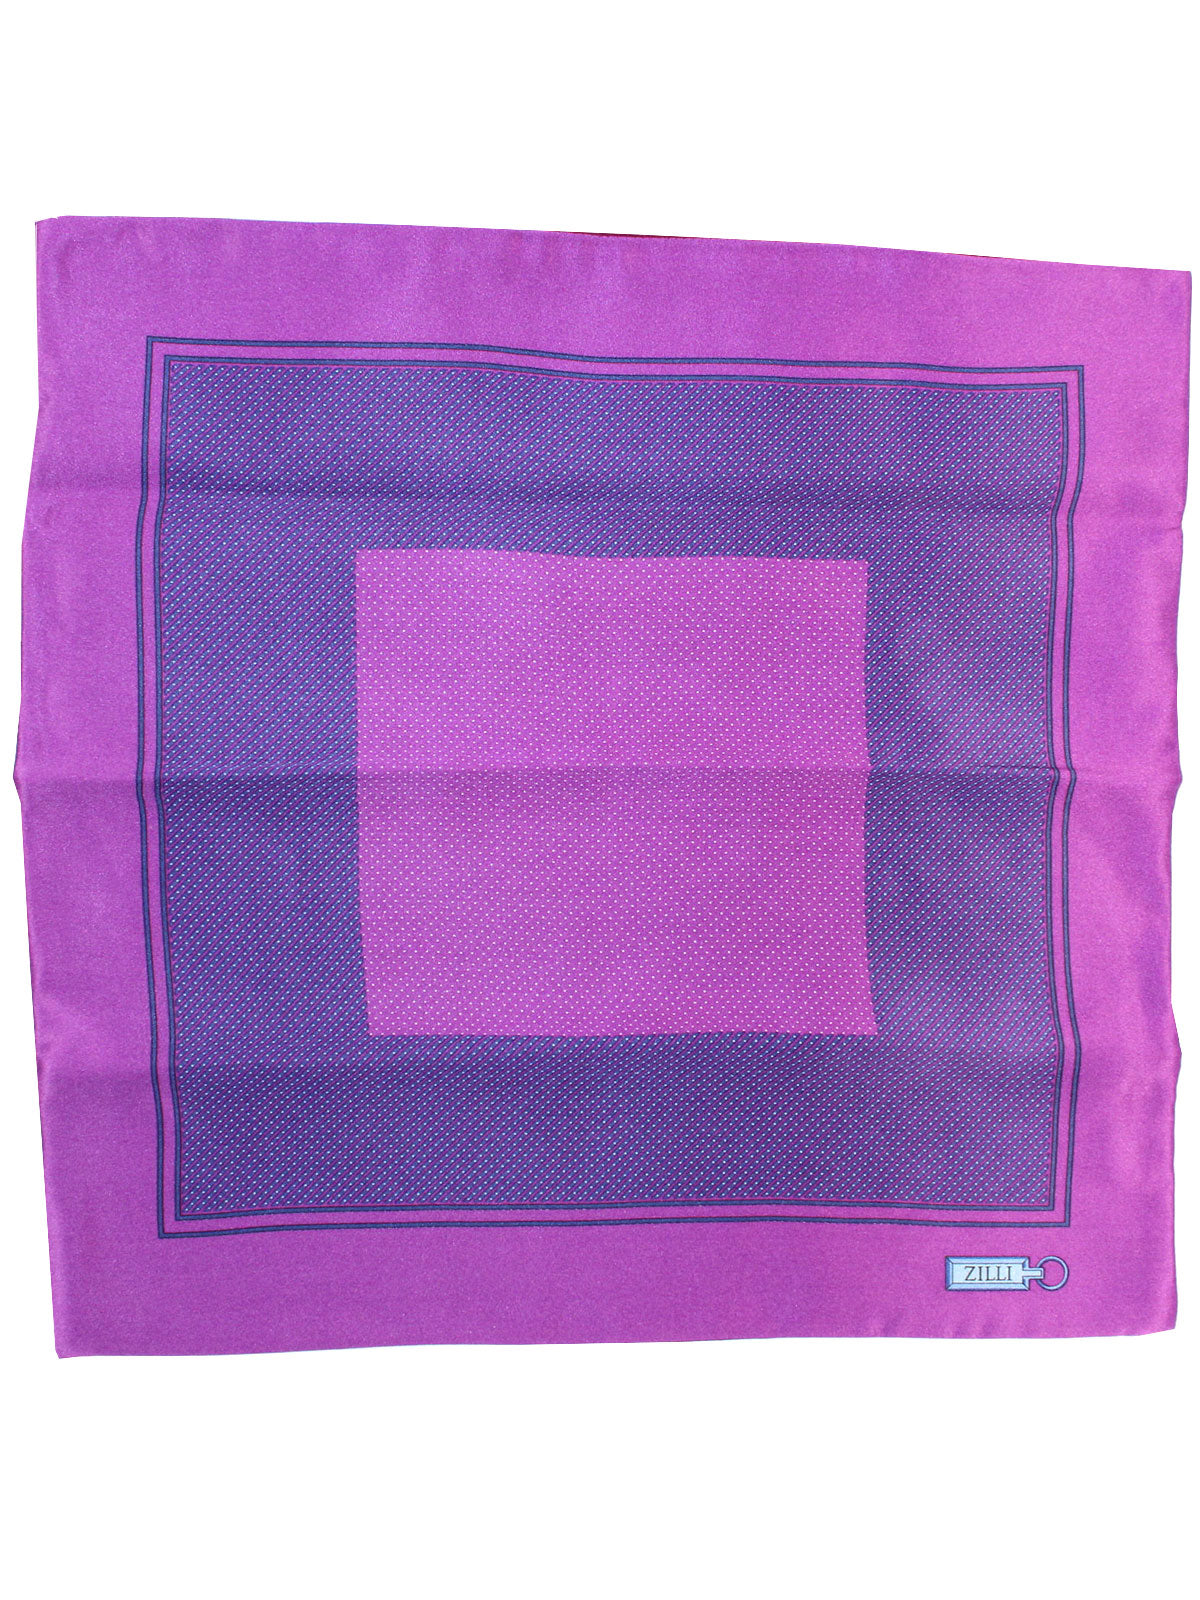 Zilli Silk Pocket Square Purple Geometric Design